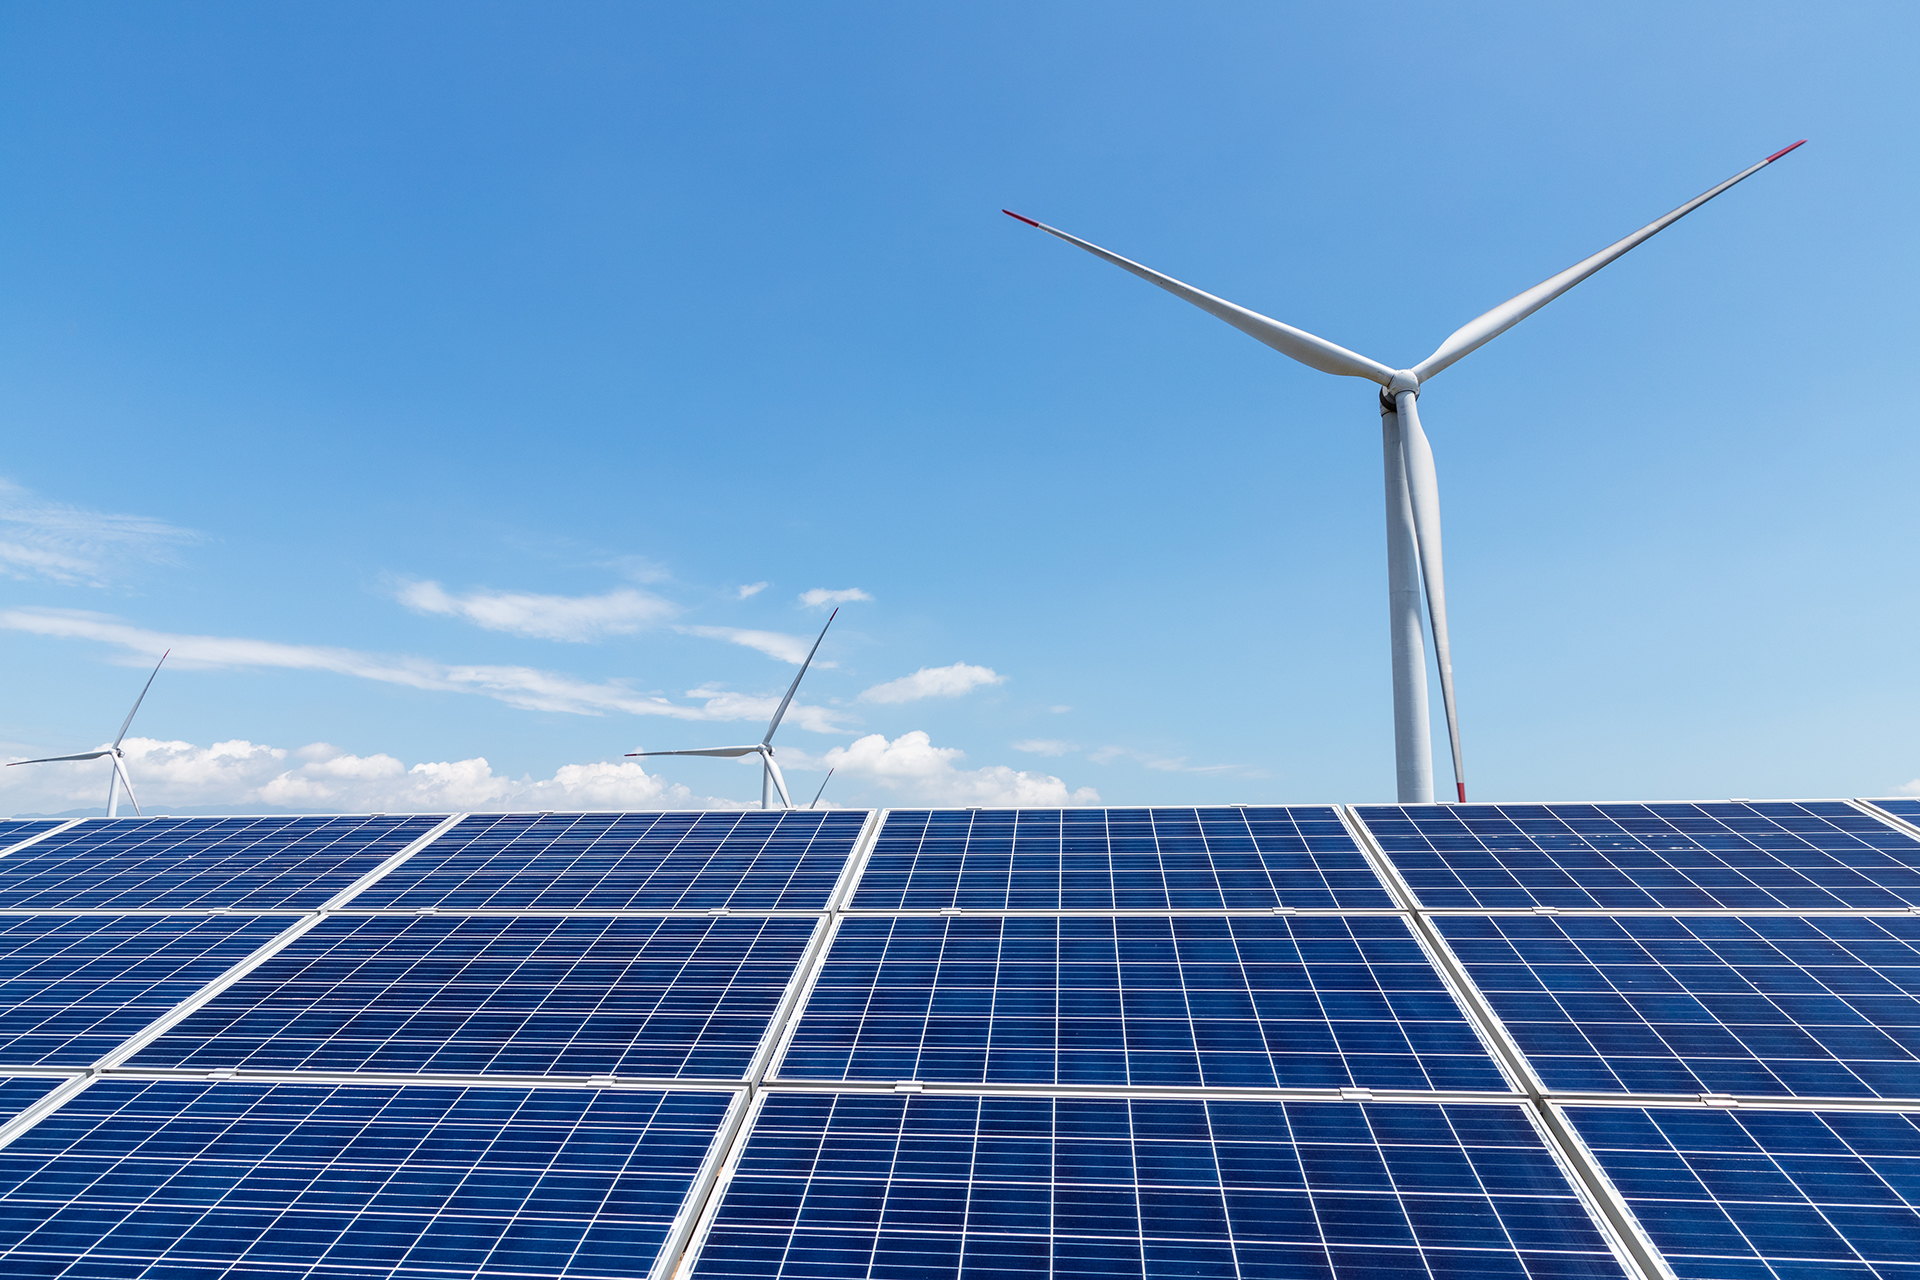 wind-power-plant-and-solar-panel-for-renewable-ene-XBQYUZC